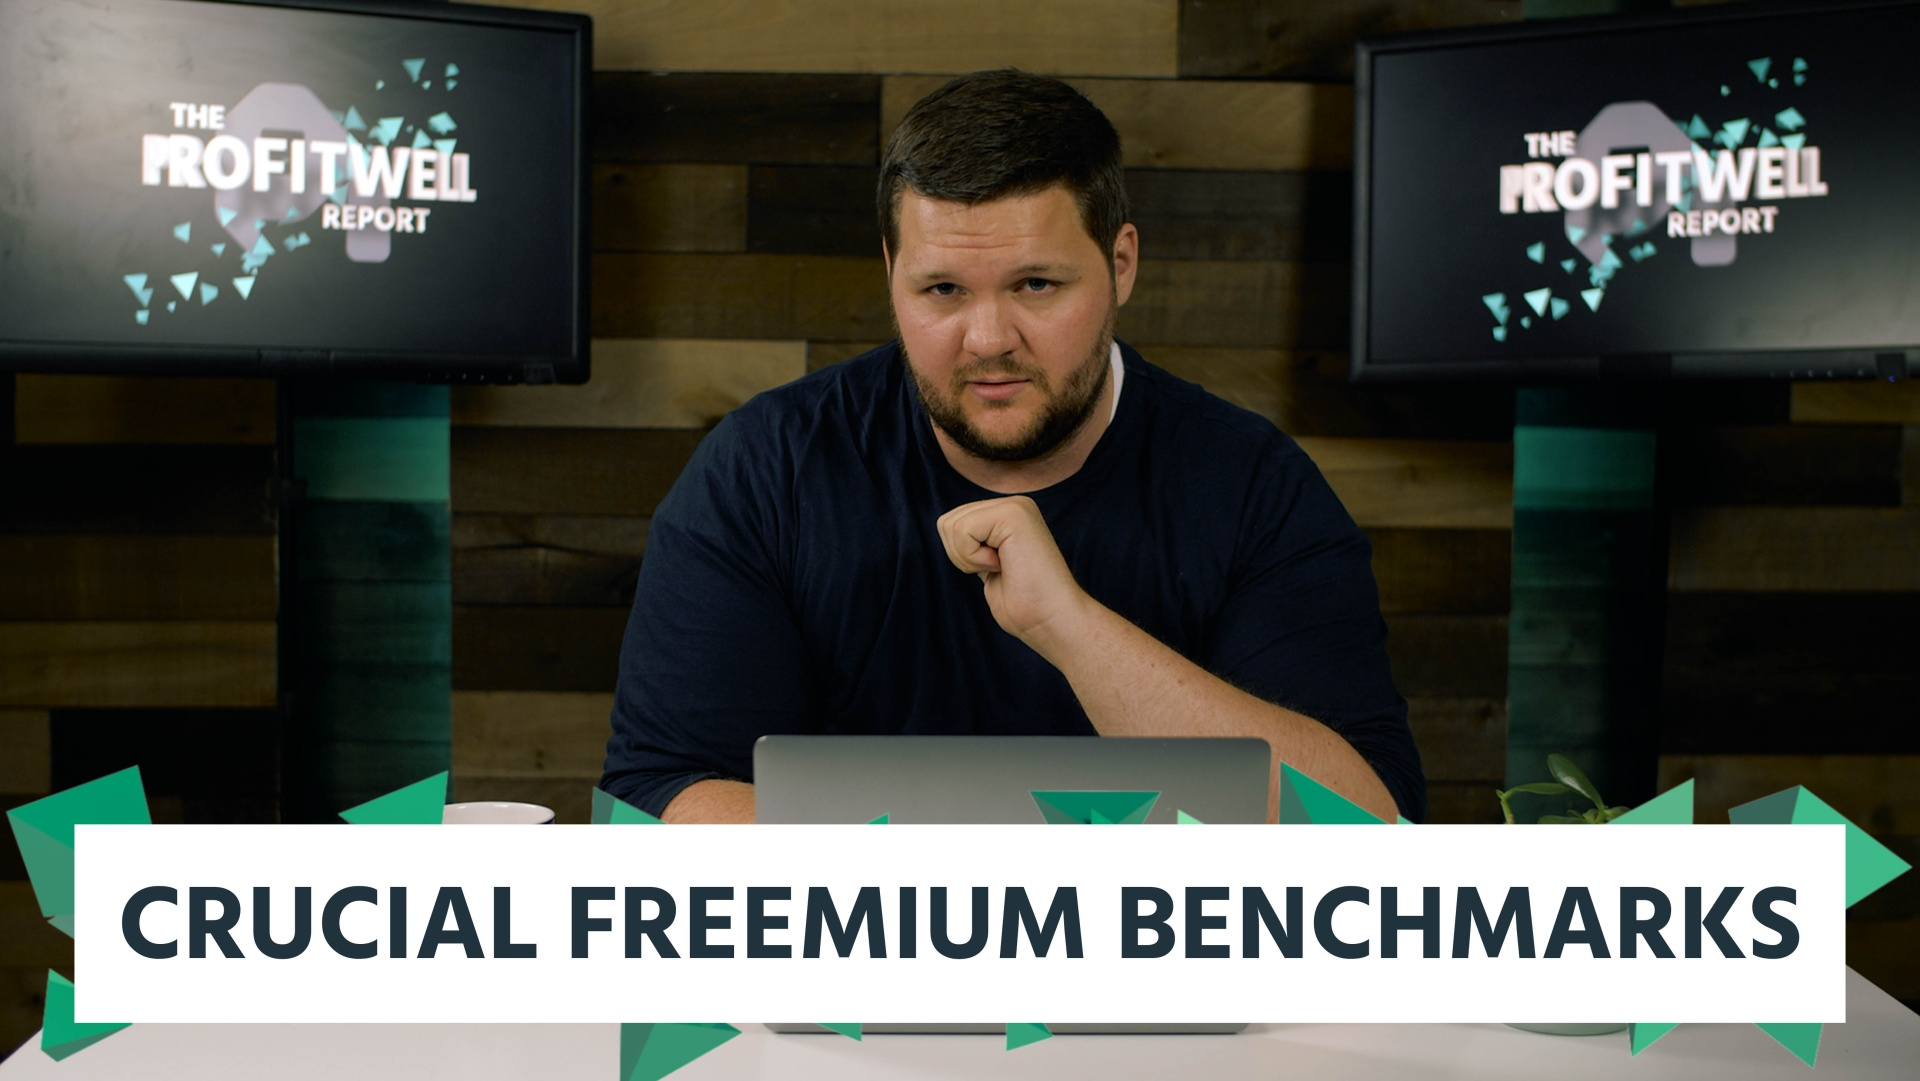 Wistia video thumbnail - ProfitWell Report Episode 4 - Crucial Freemium Benchmarks BLOG